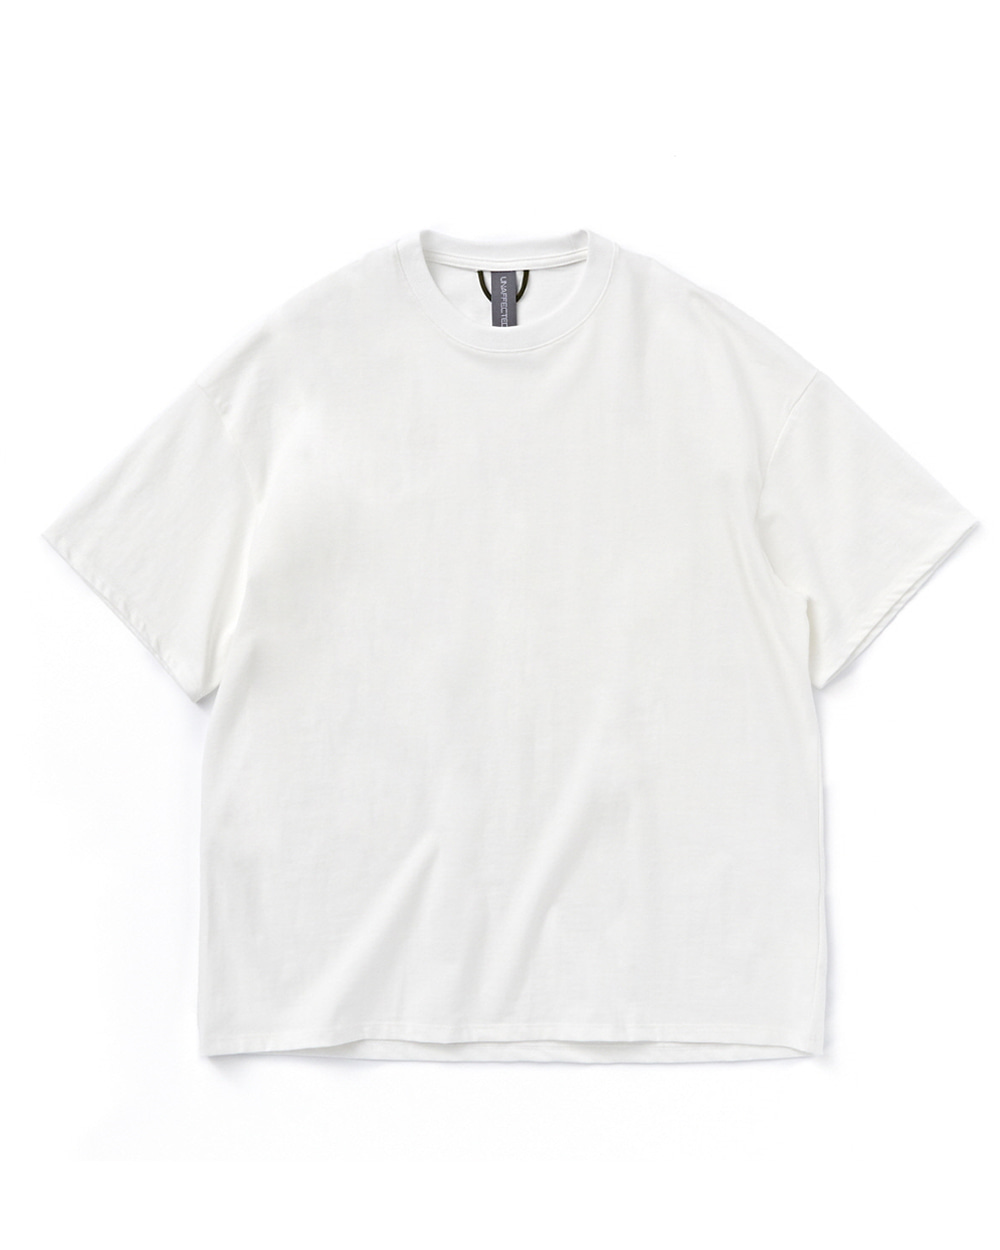 언어펙티드 LOGO LABEL T-SHIRT (White)